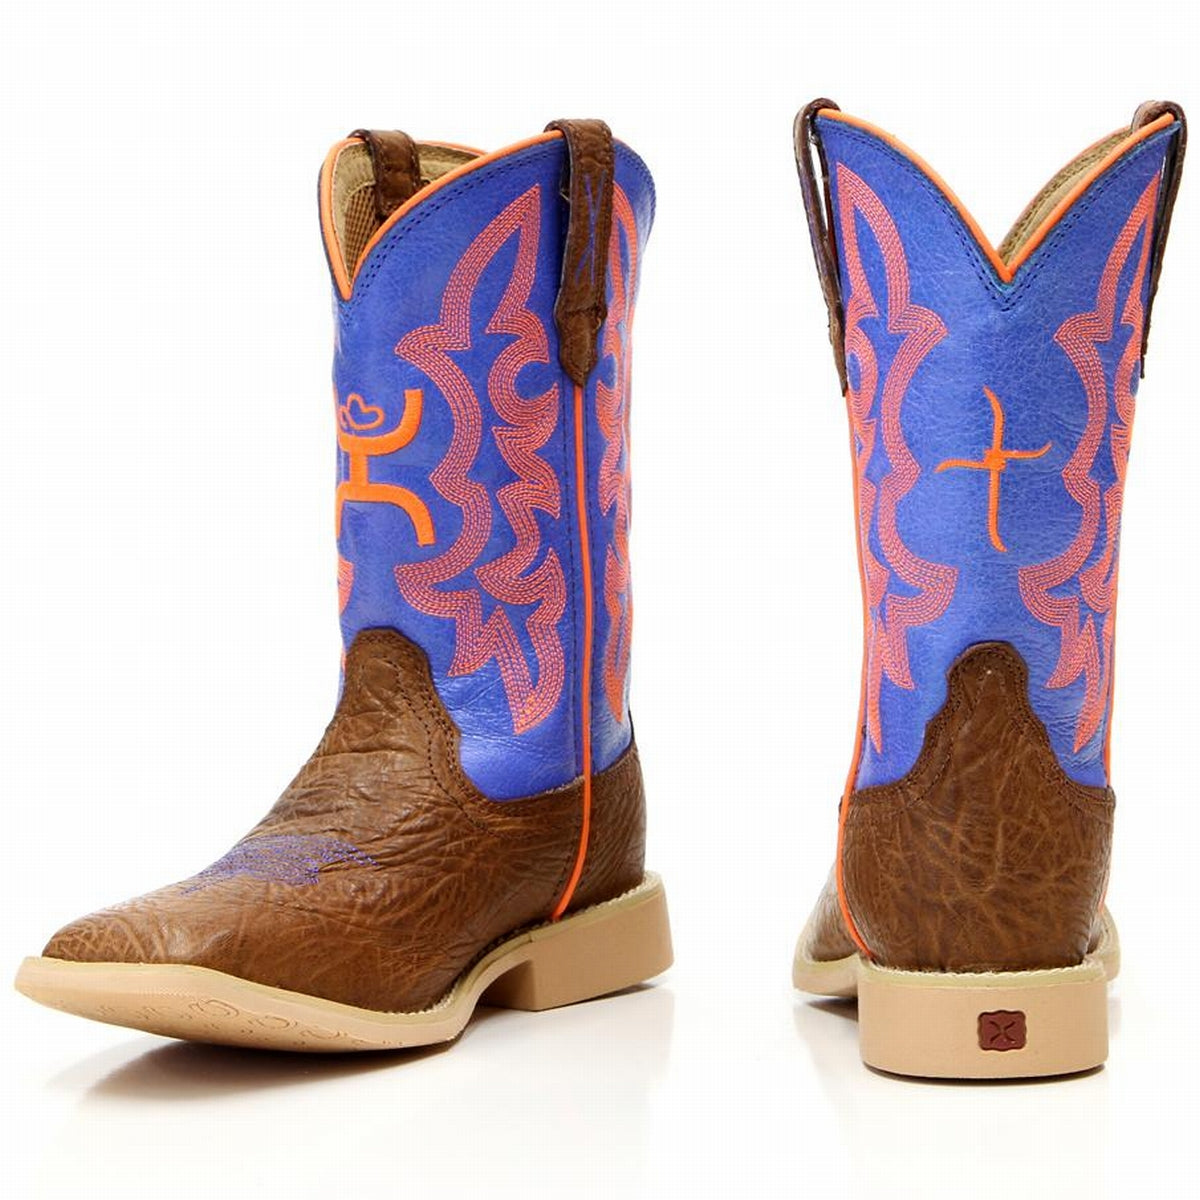 Kids Boots - Twisted X Hooey Kids Boots/YHY0001 - Twist - Mock Brothers Saddlery and Western Wear